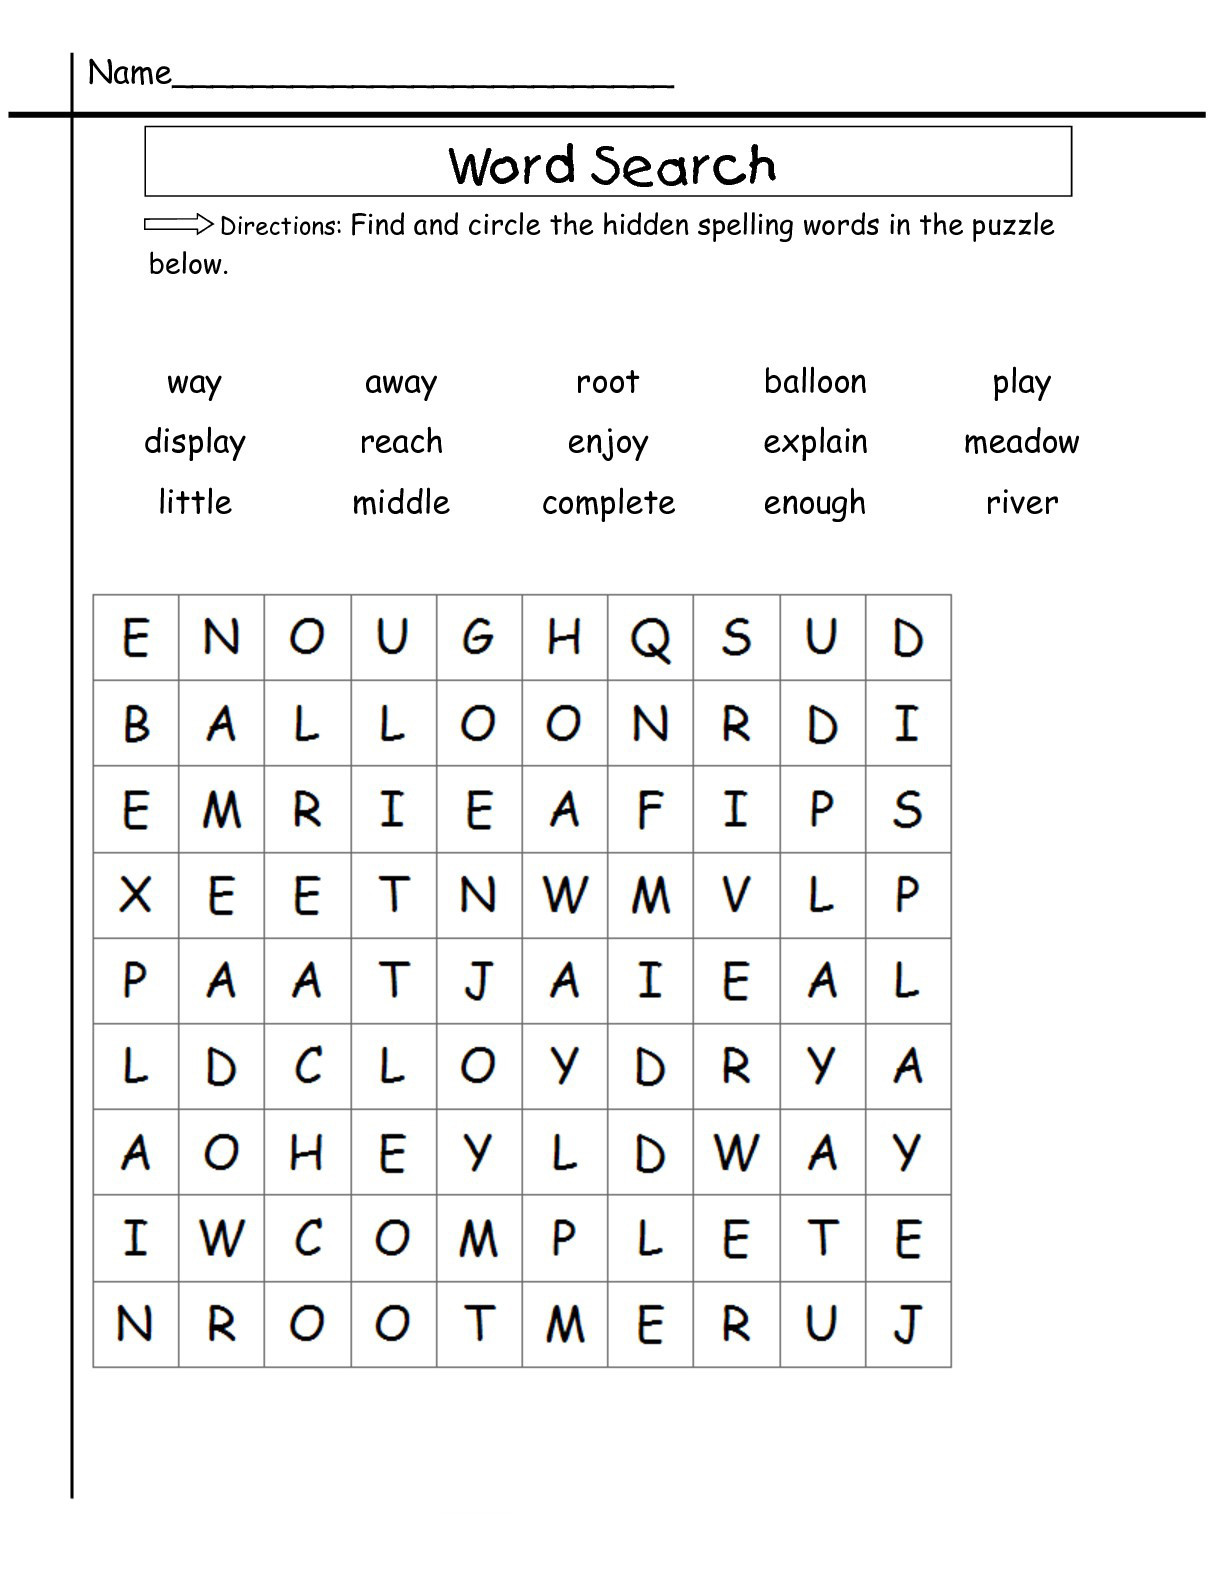 2nd Grade Spelling Words Worksheets 2nd Grade Word Search Best Coloring Pages for Kids